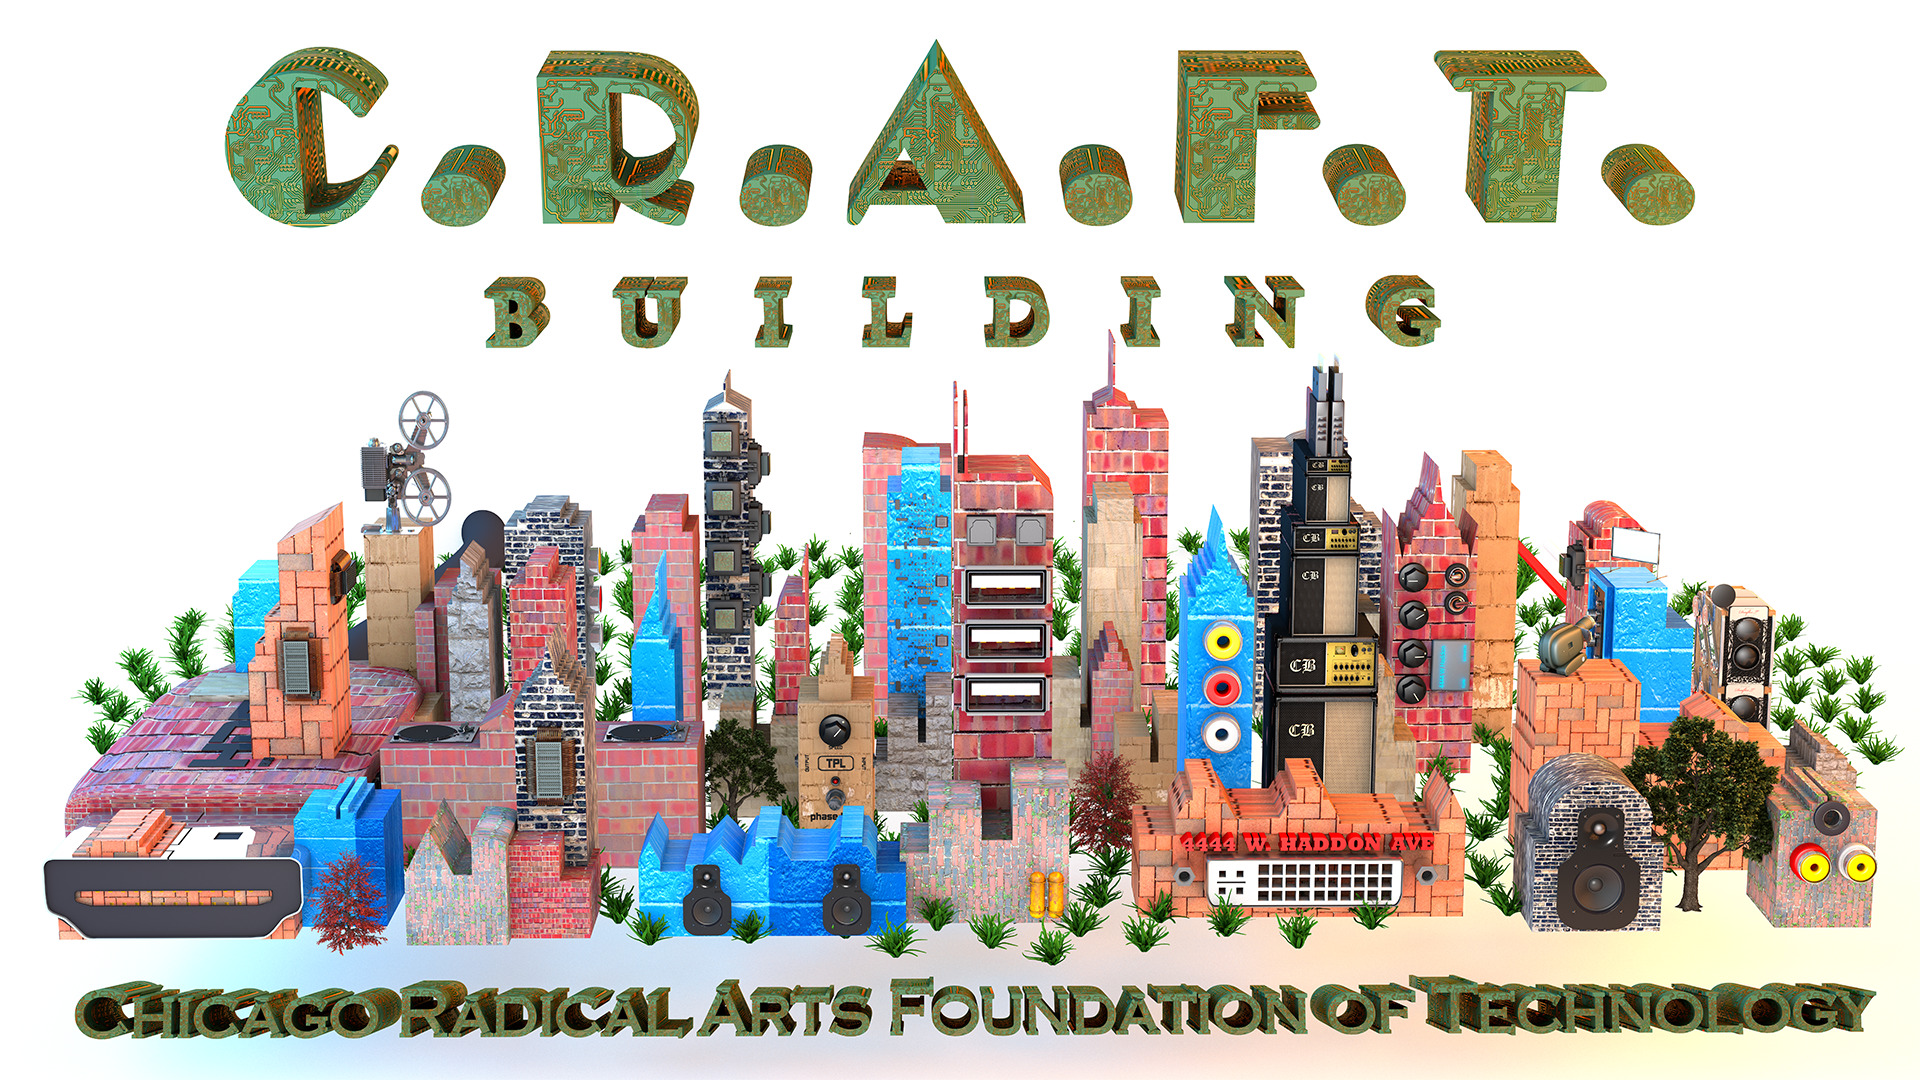 This image is the 3D Banner created for the CRAFT building.